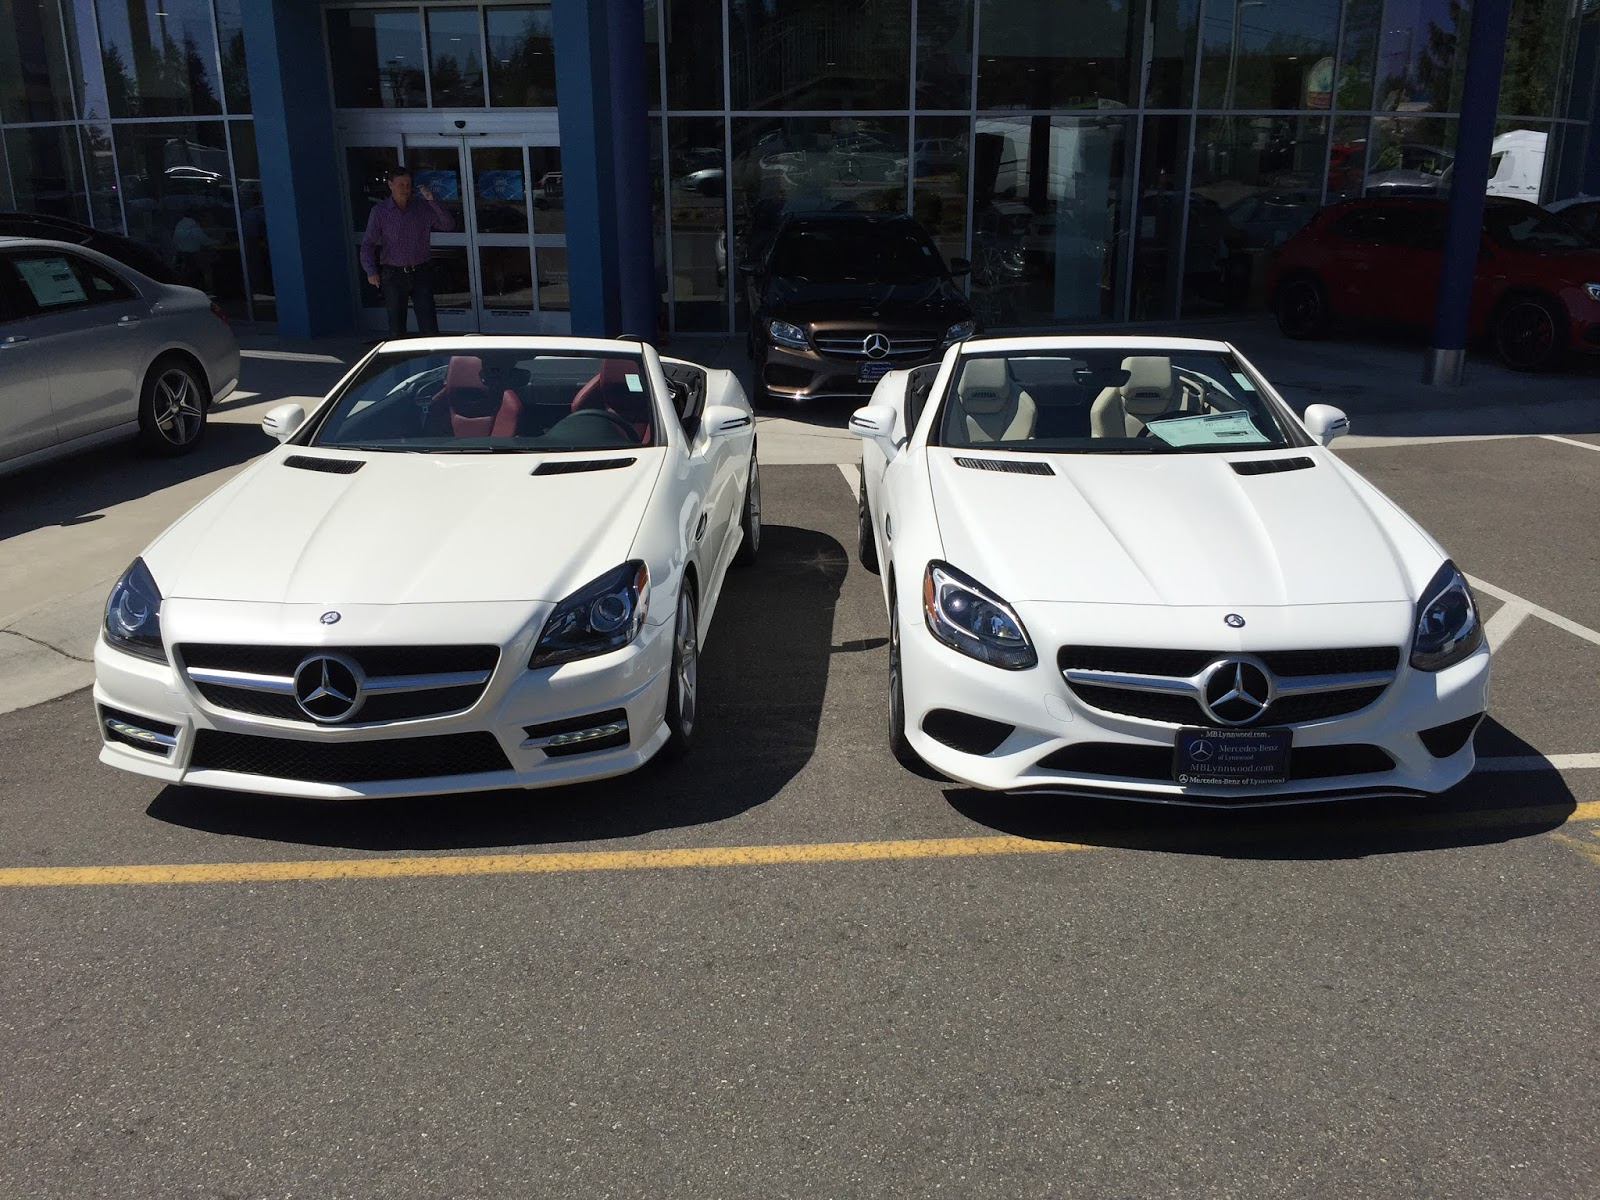 2016 Slk Vs 2017 Slc Mercedes Benz Of Lynnwood